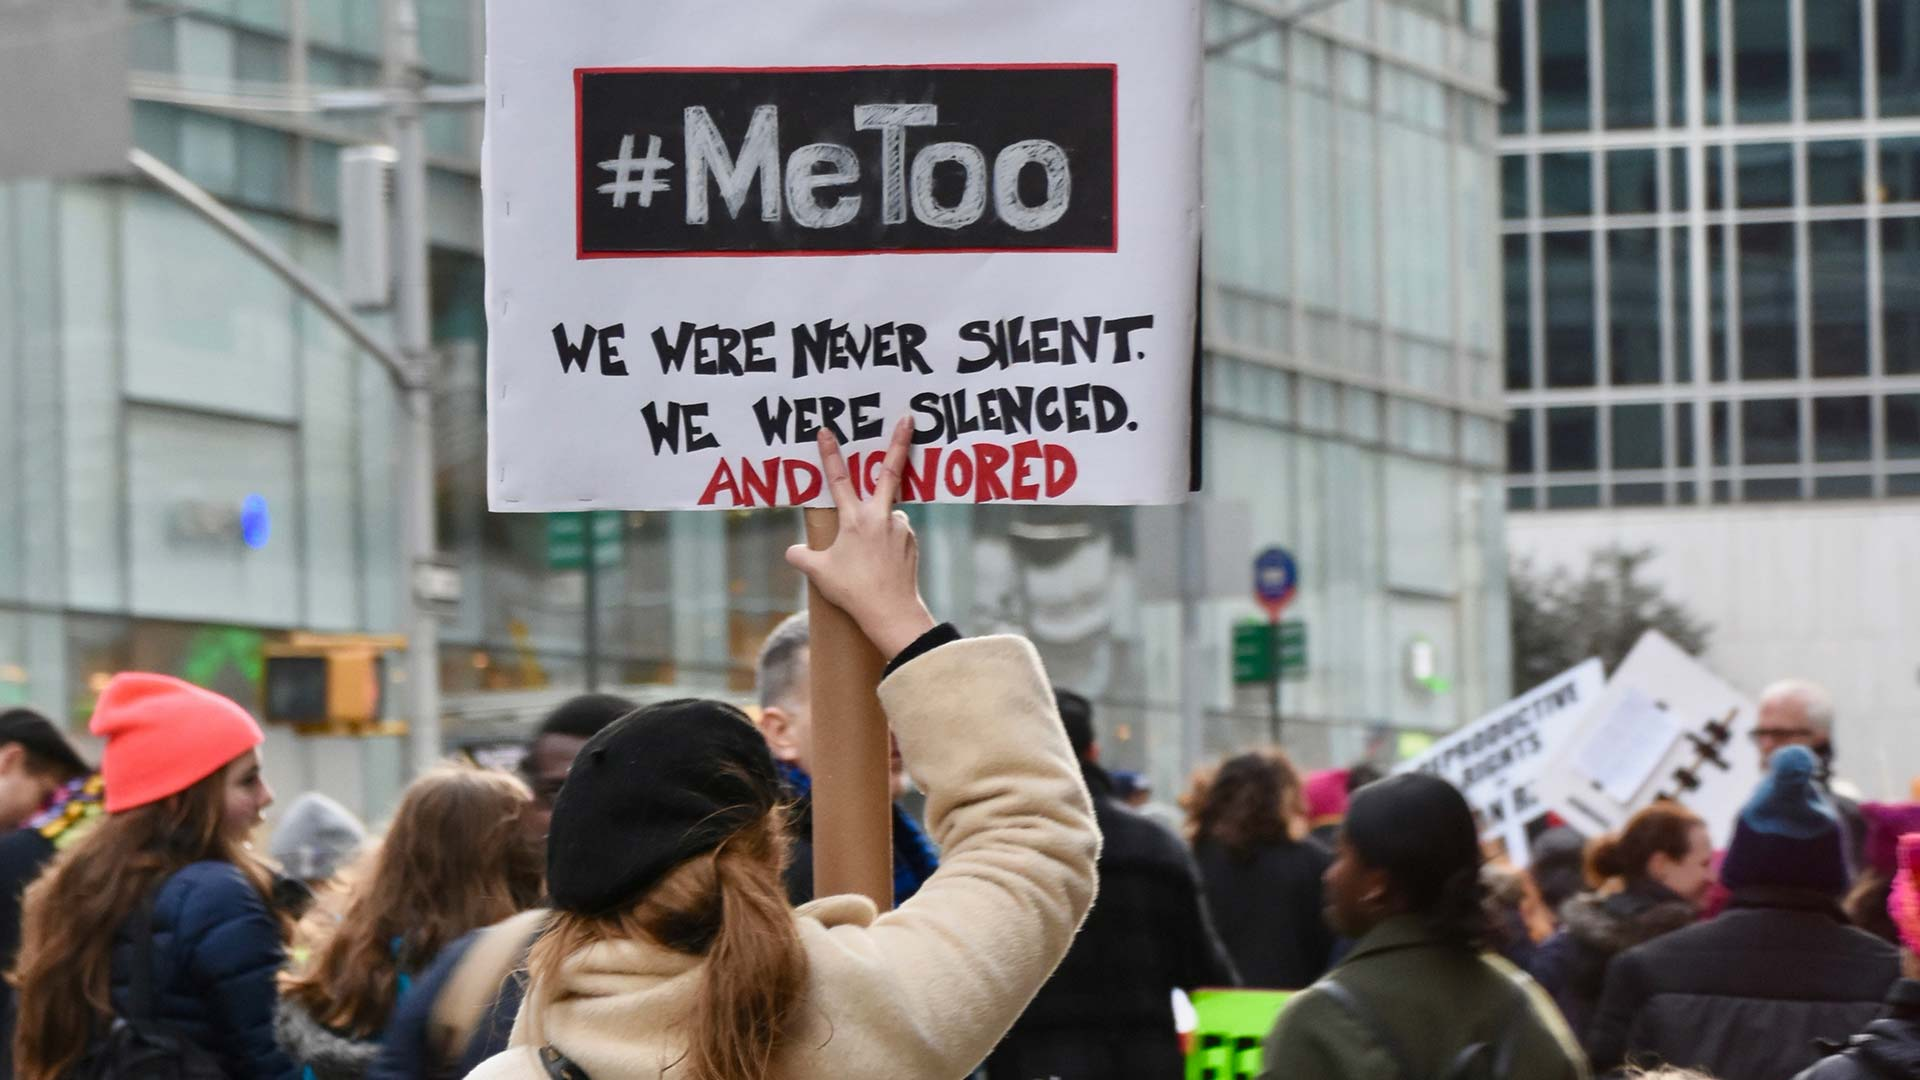 A protester holds a #MeToo sign at a march.